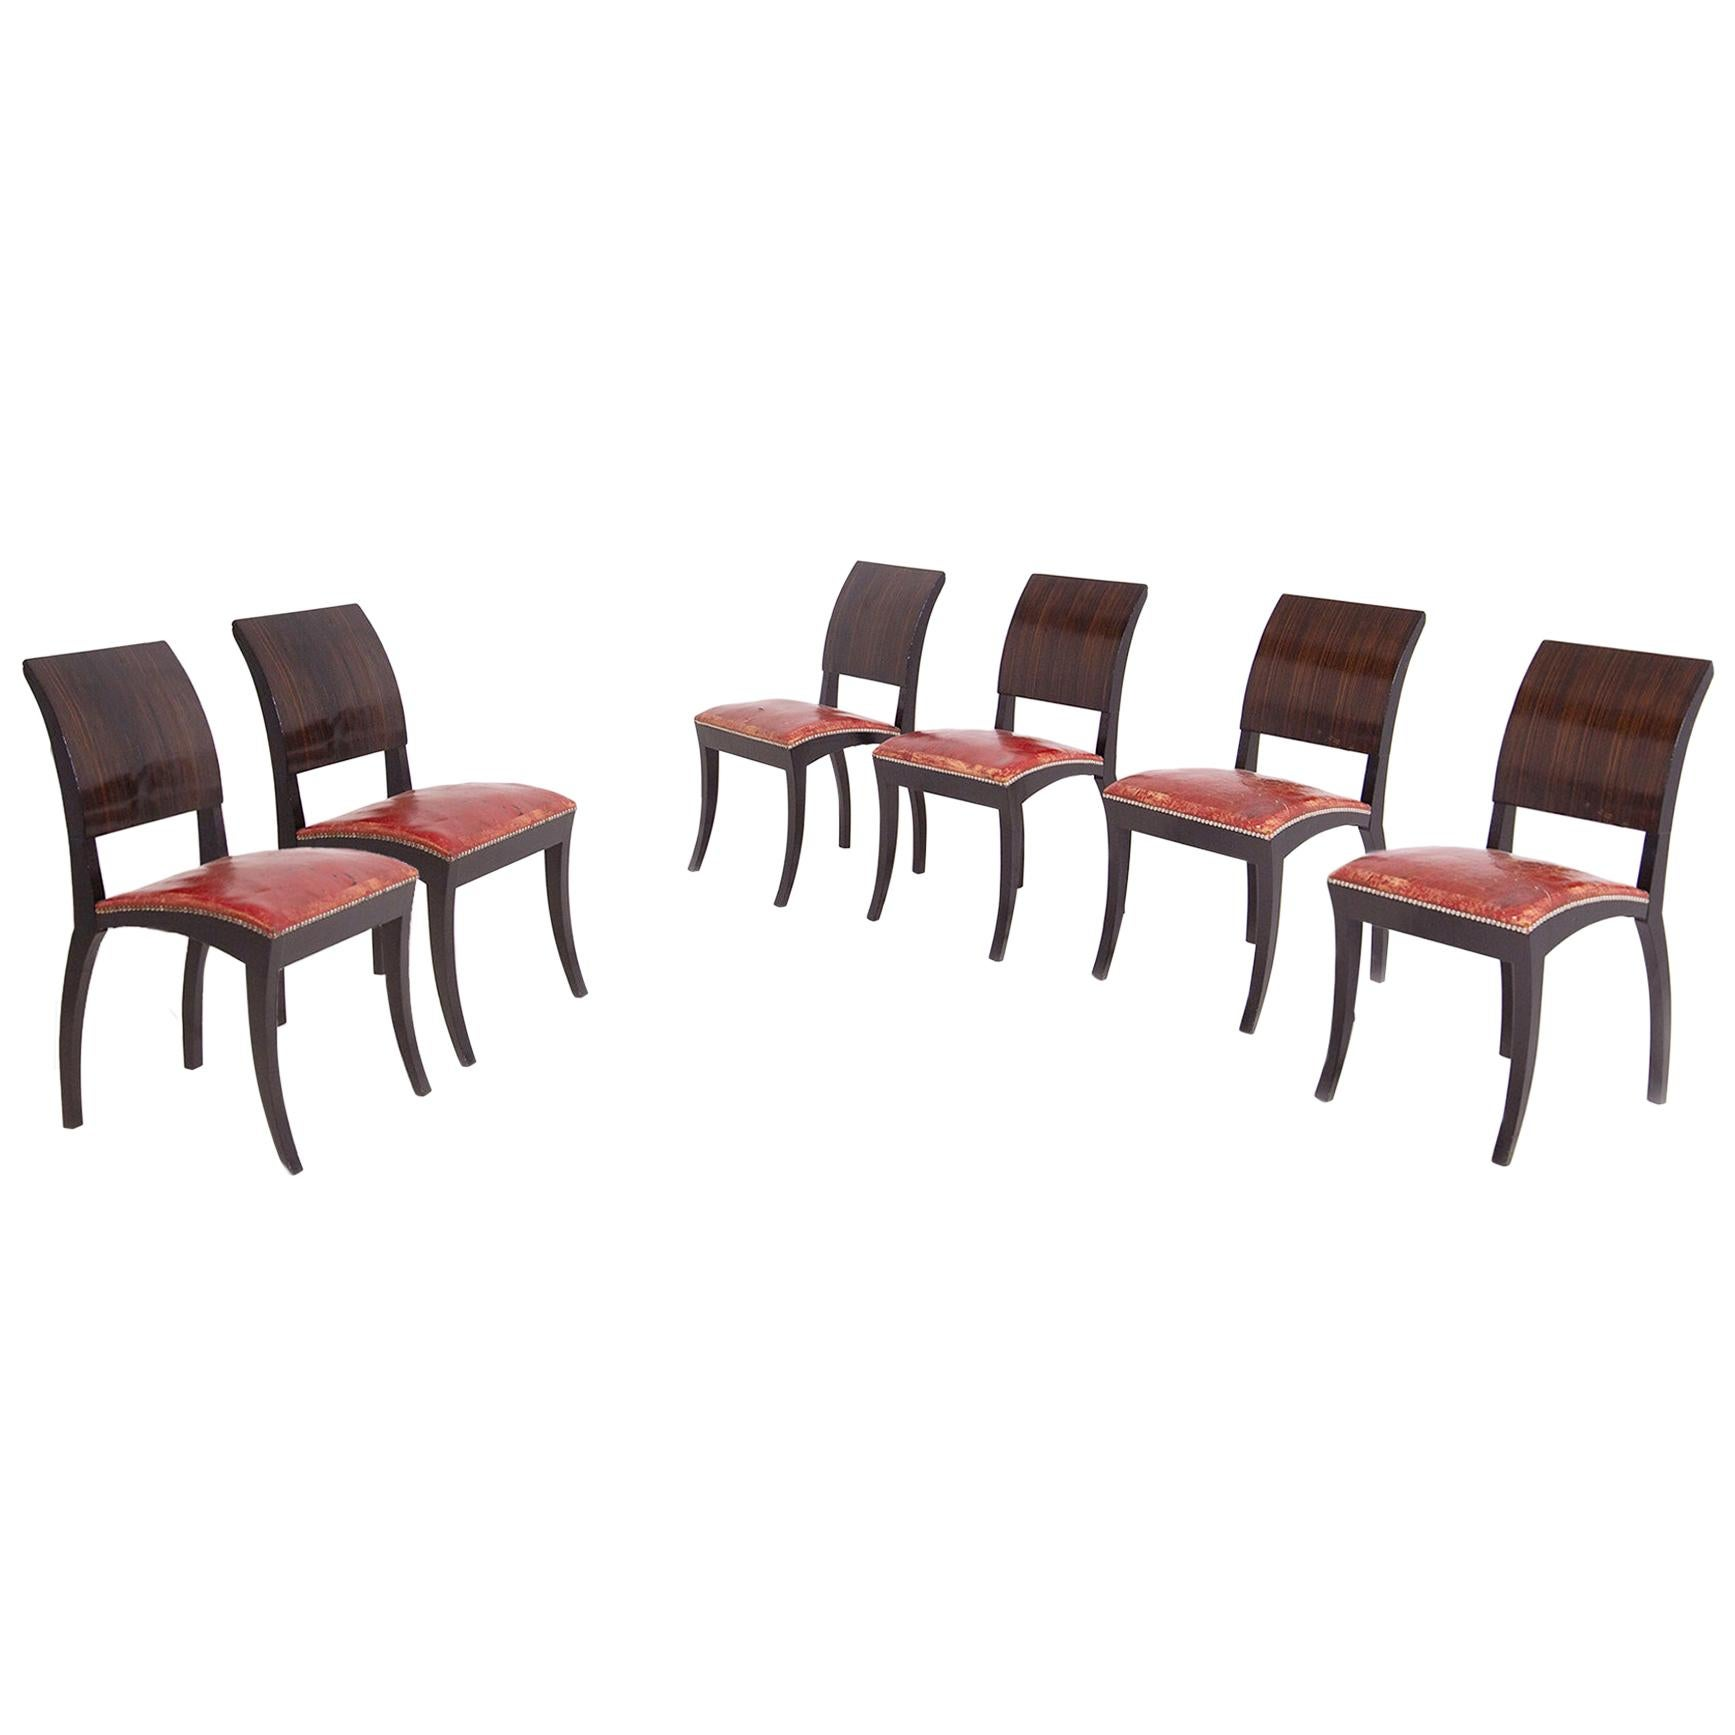 Set of Six French Chairs Art Deco, 1920s-1930s